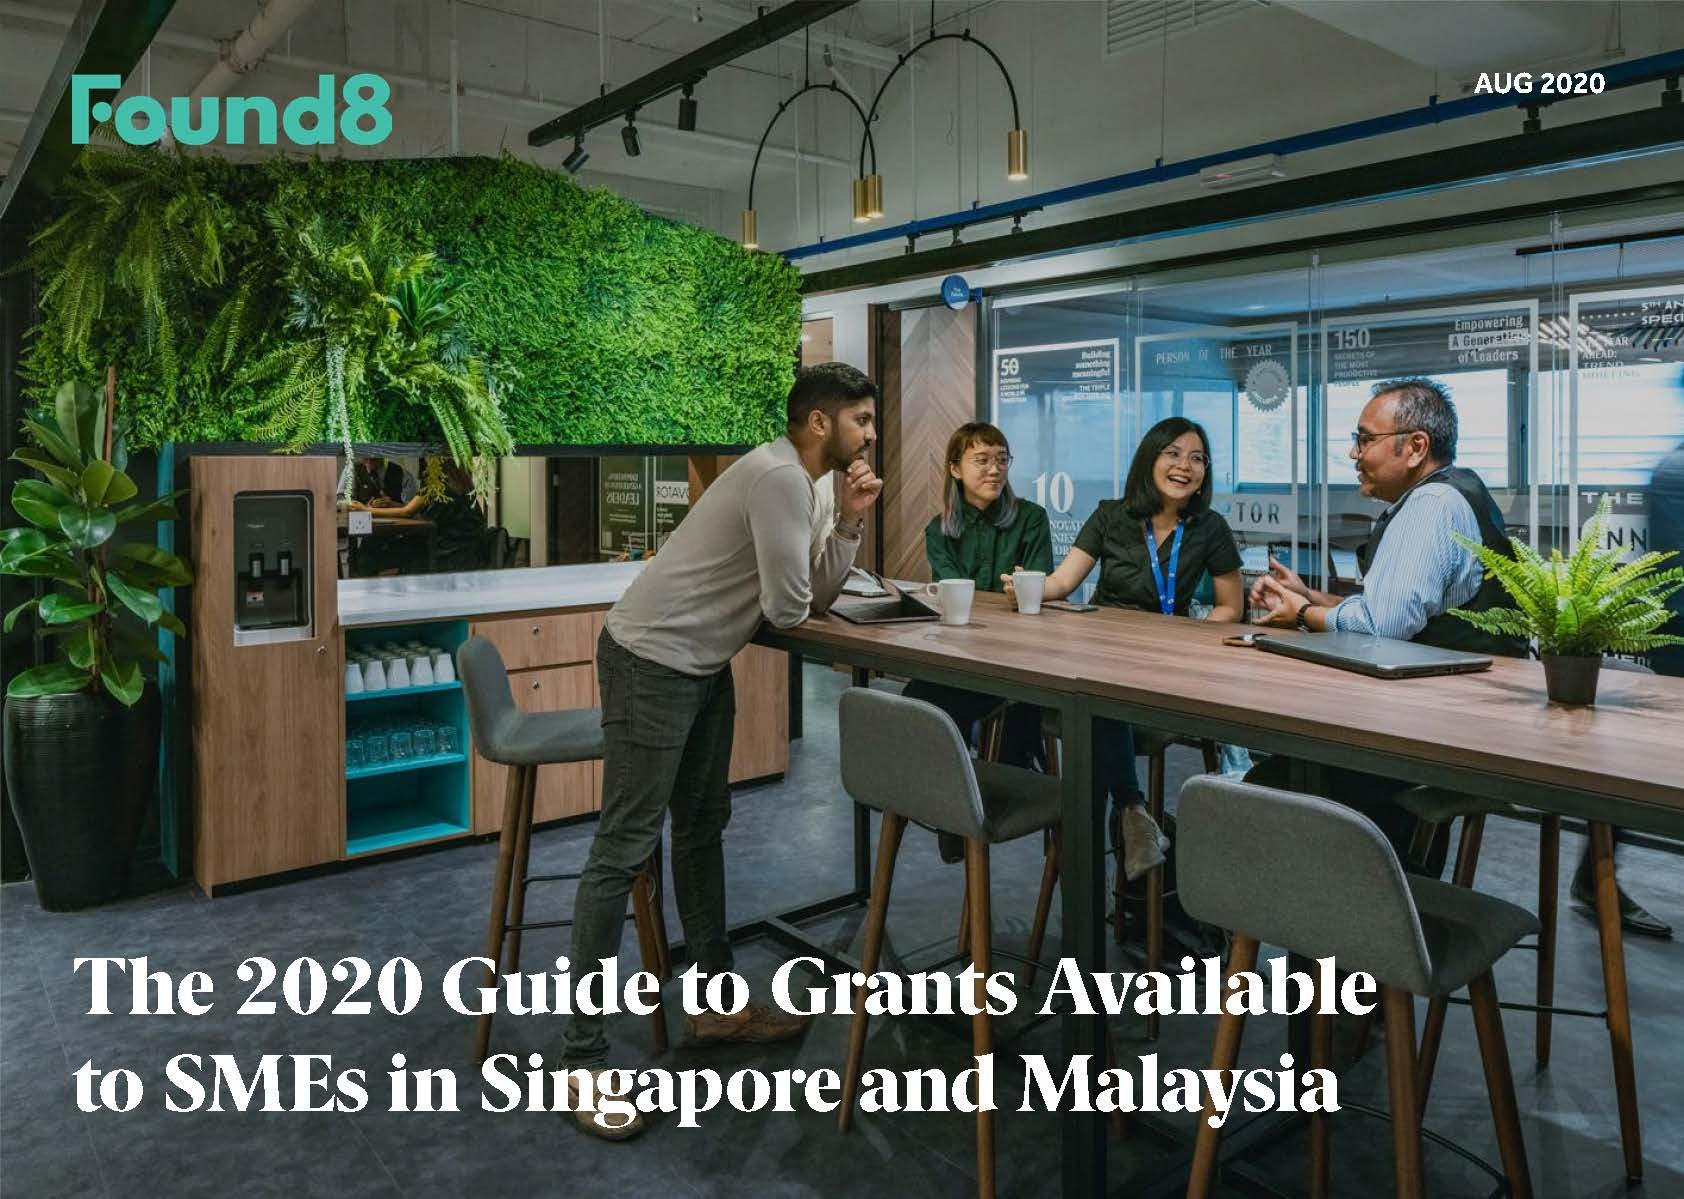 The 2020 Guide to Grants Available to SMEs in Singapore and Malaysia by Found8